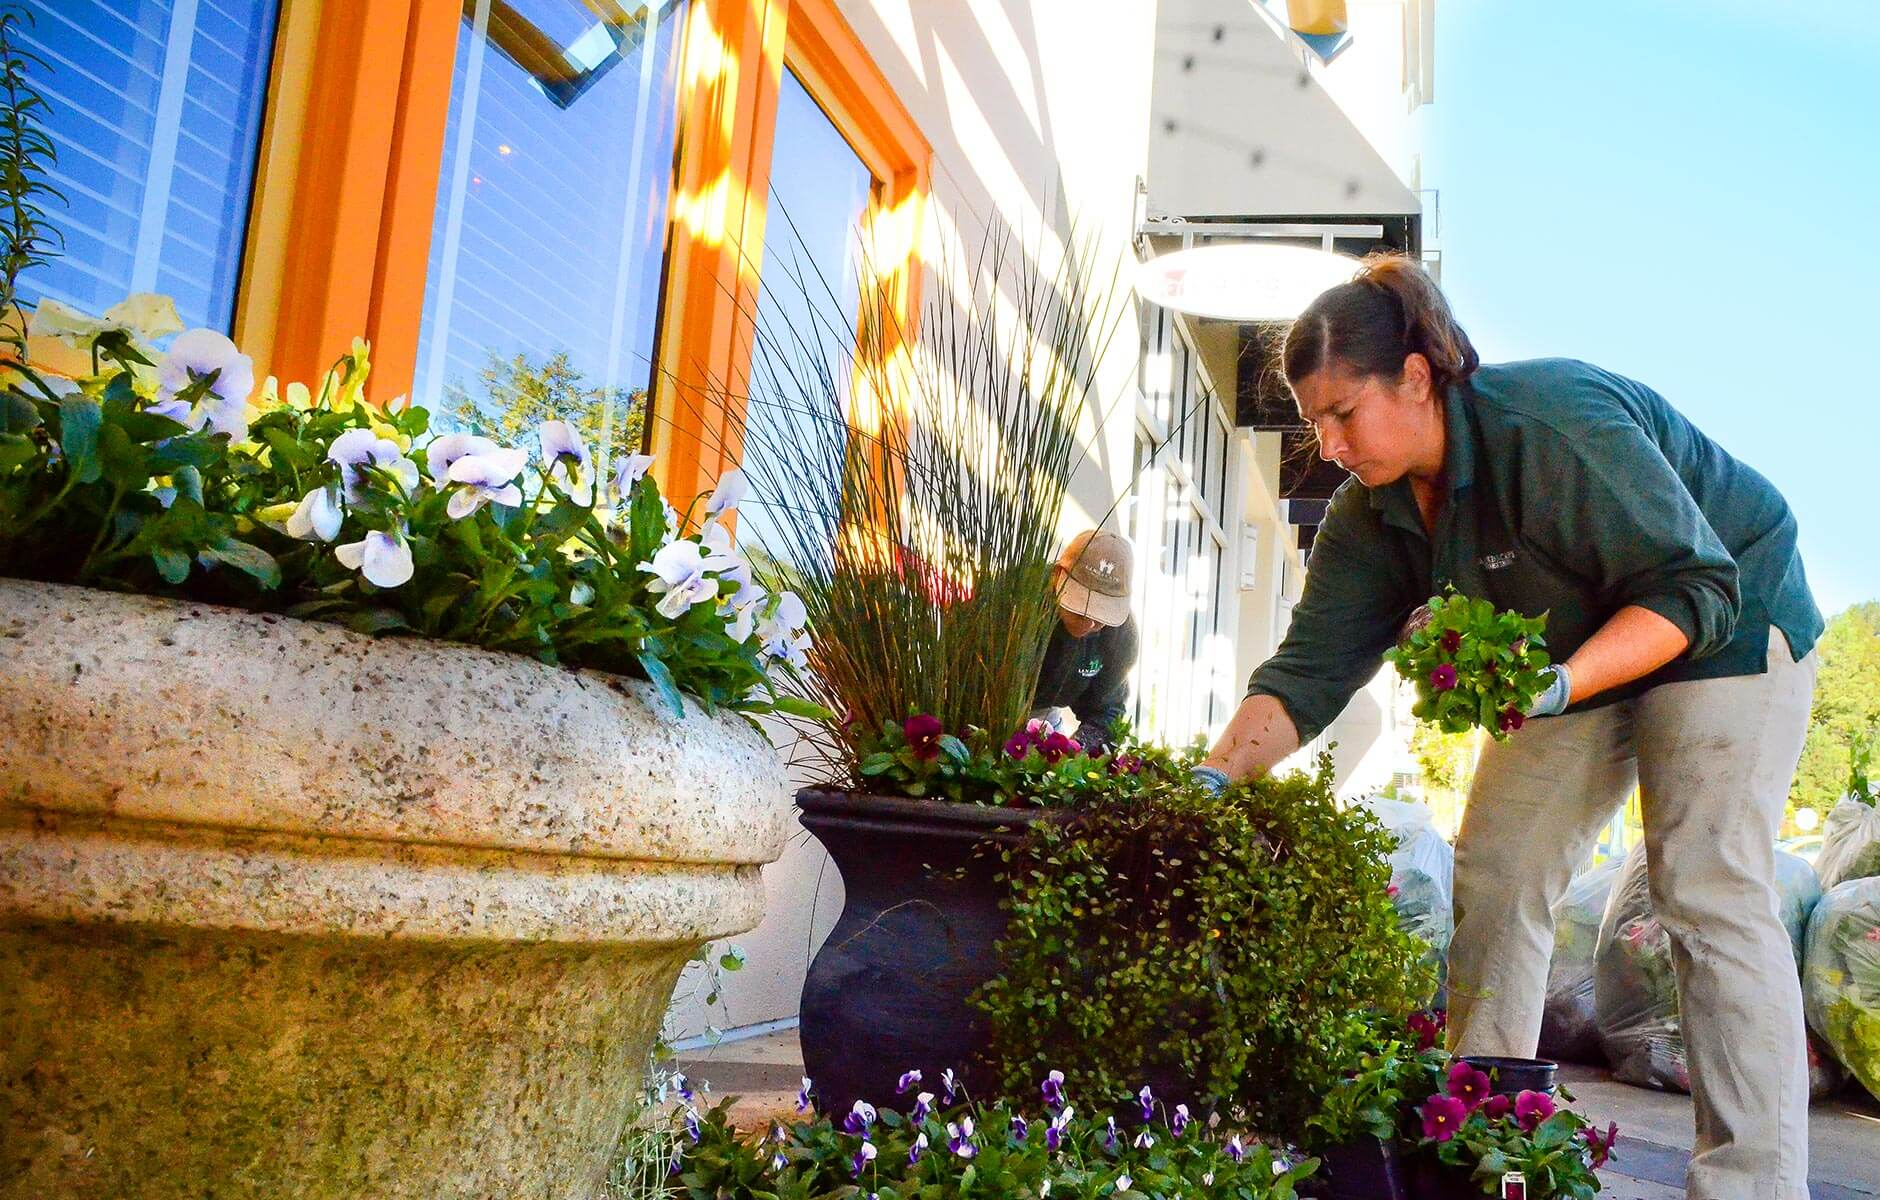 Installing new flowers in flower pots at large retail center